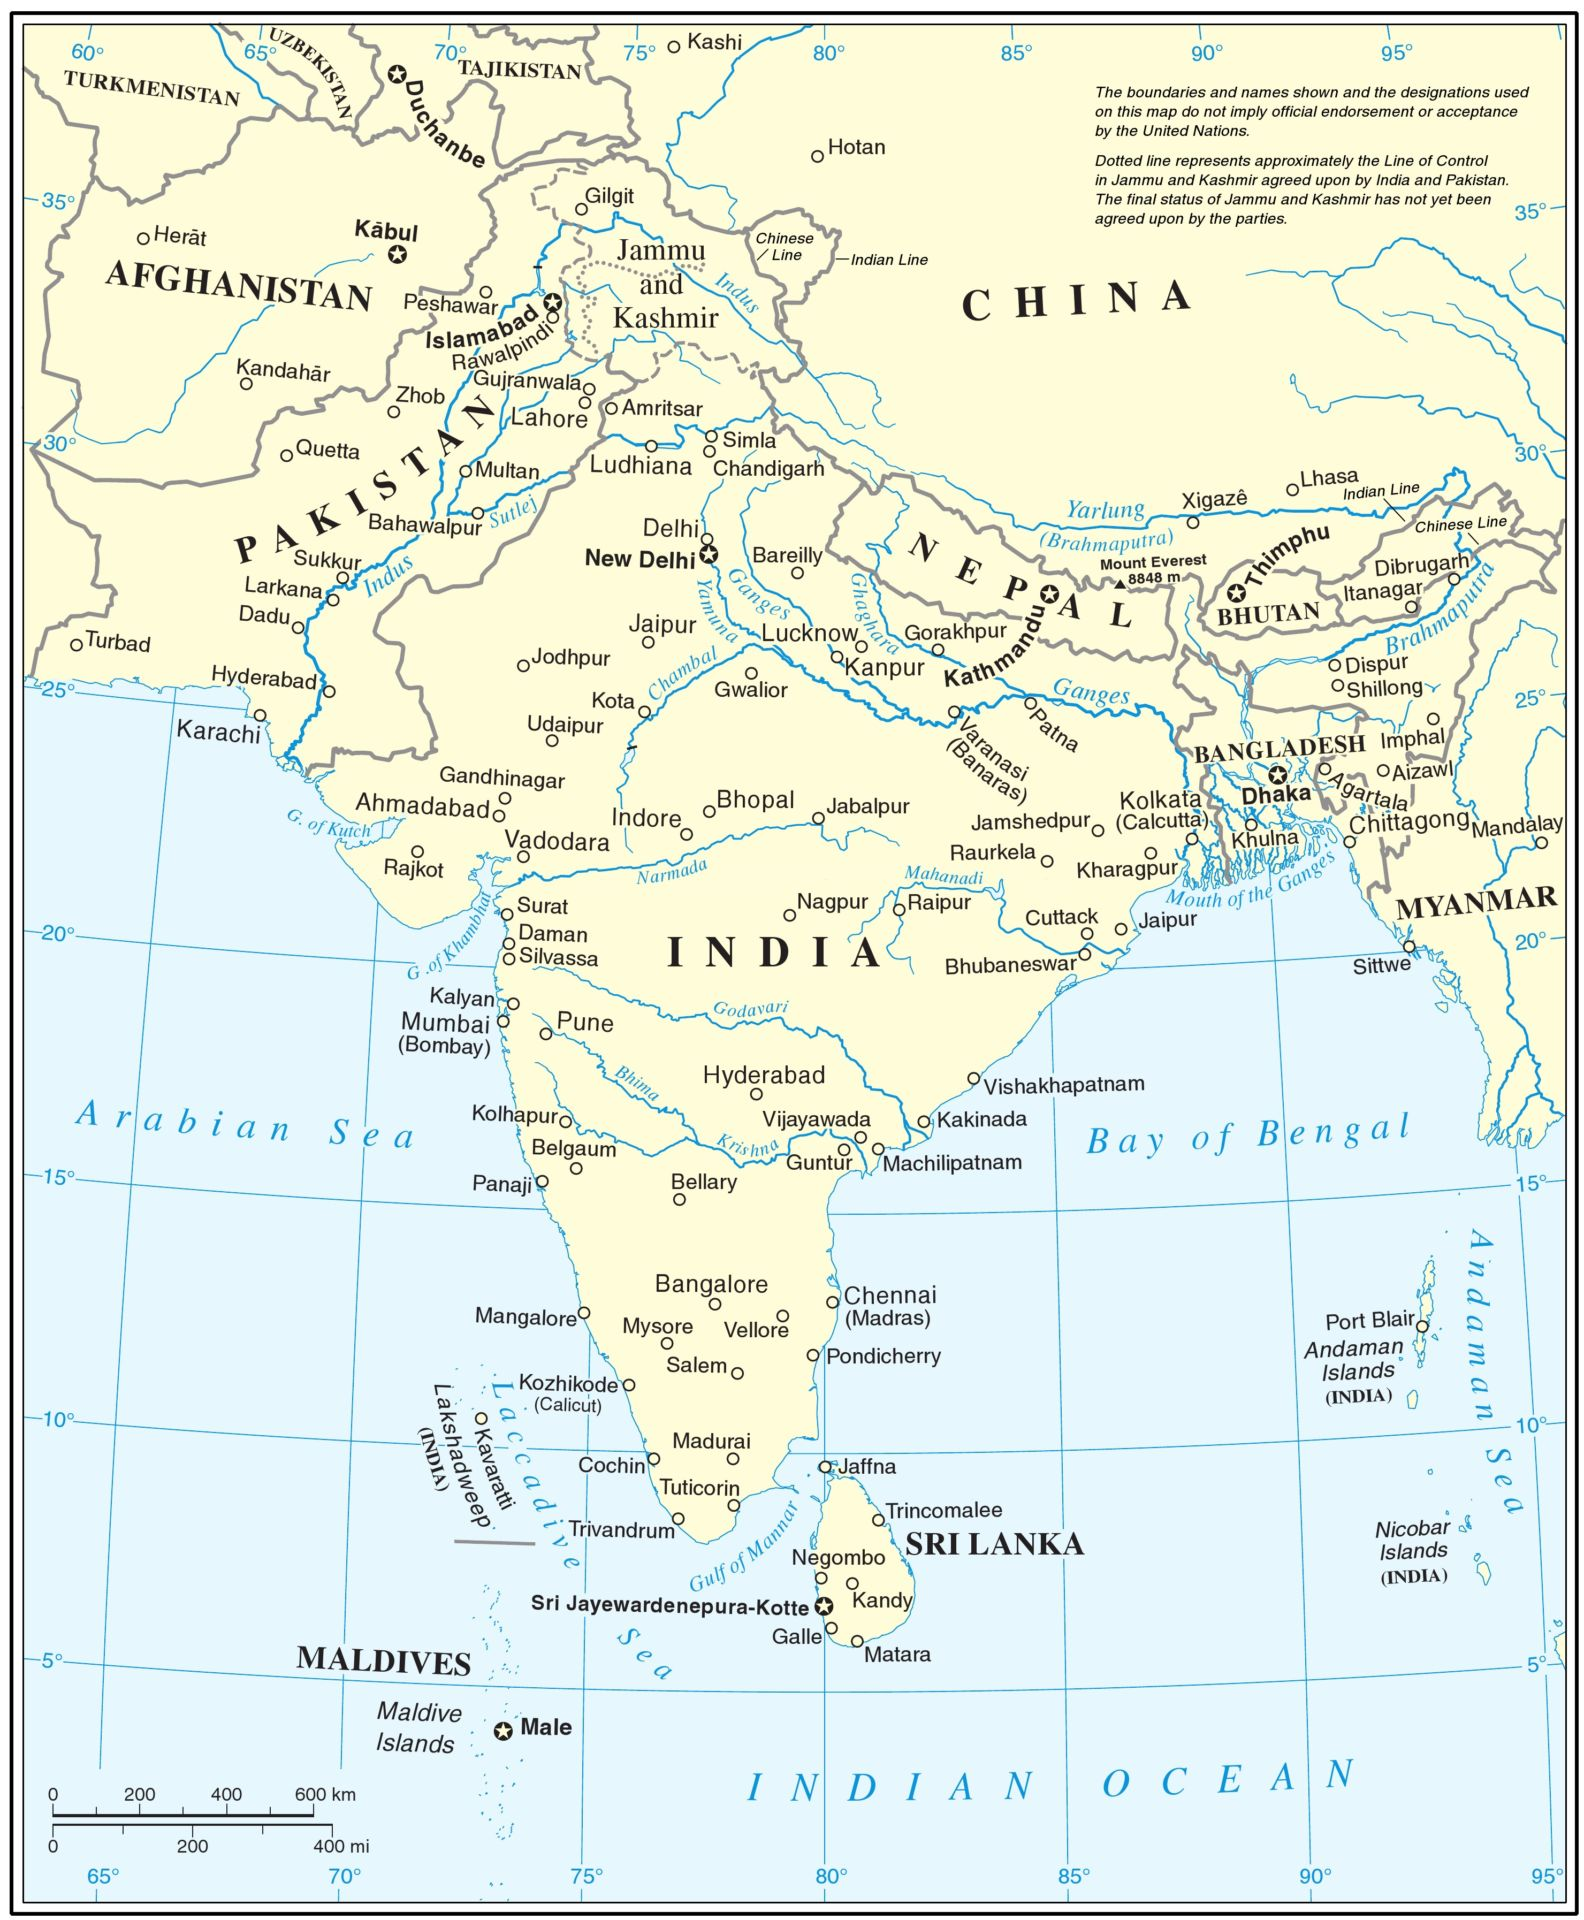 Asia Bodies Of Water Map : bodies, water, Transboundary, Rivers, South, Regional, Water, Management, Impakter